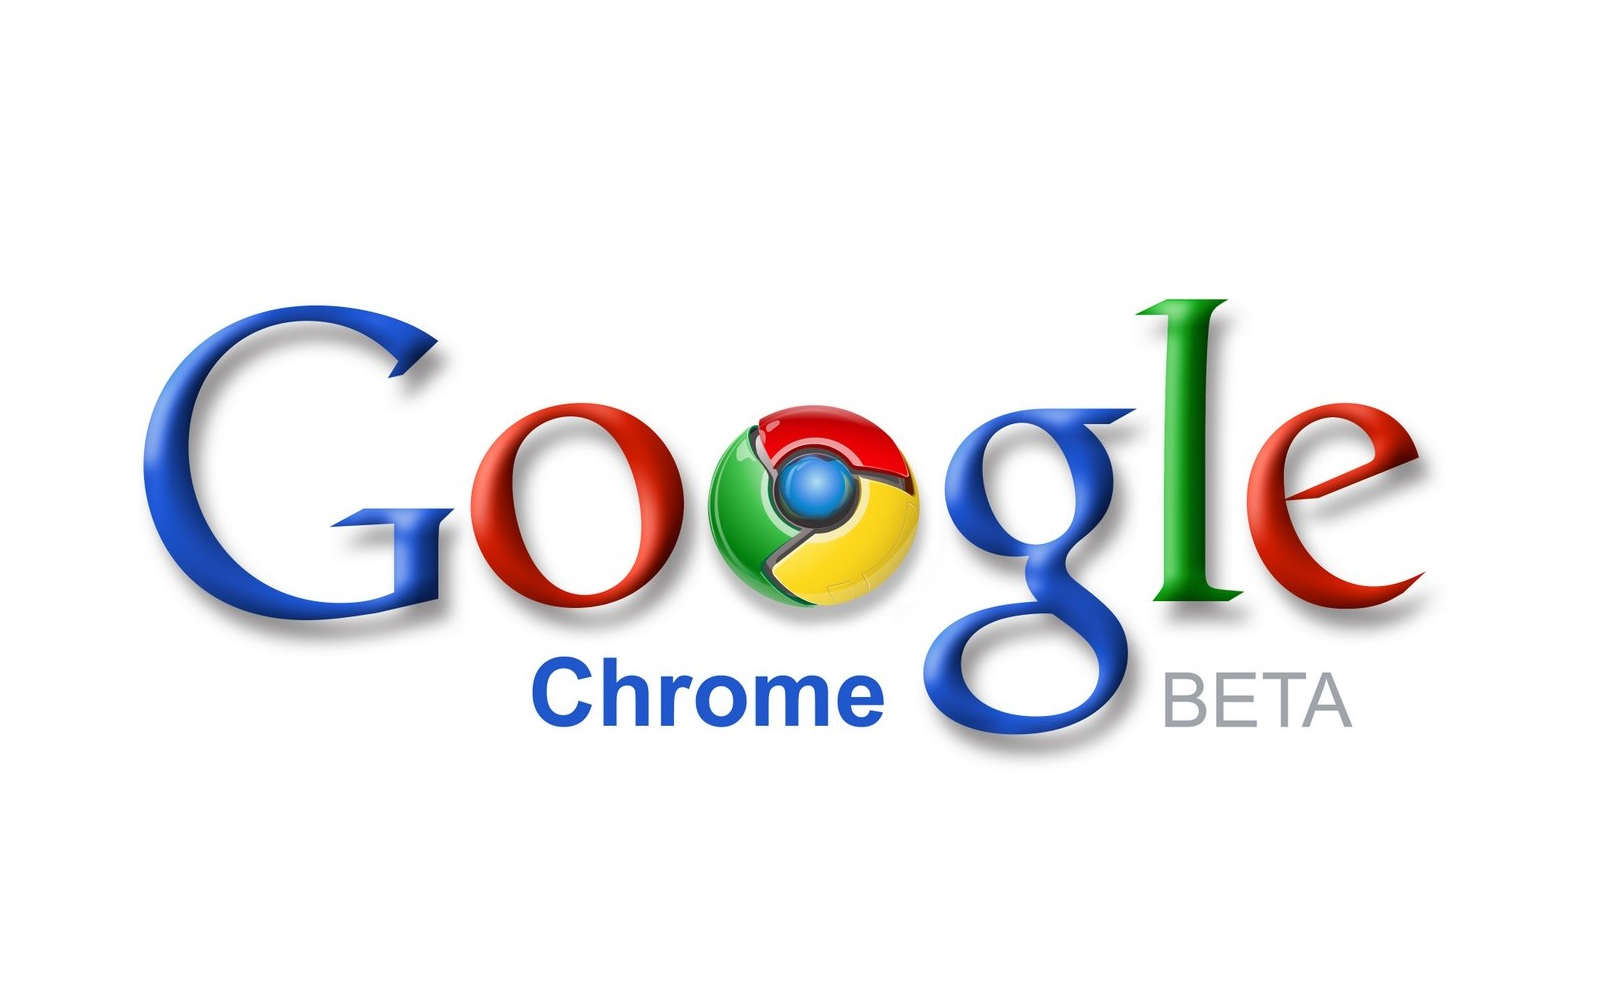 google chrome logo 2008